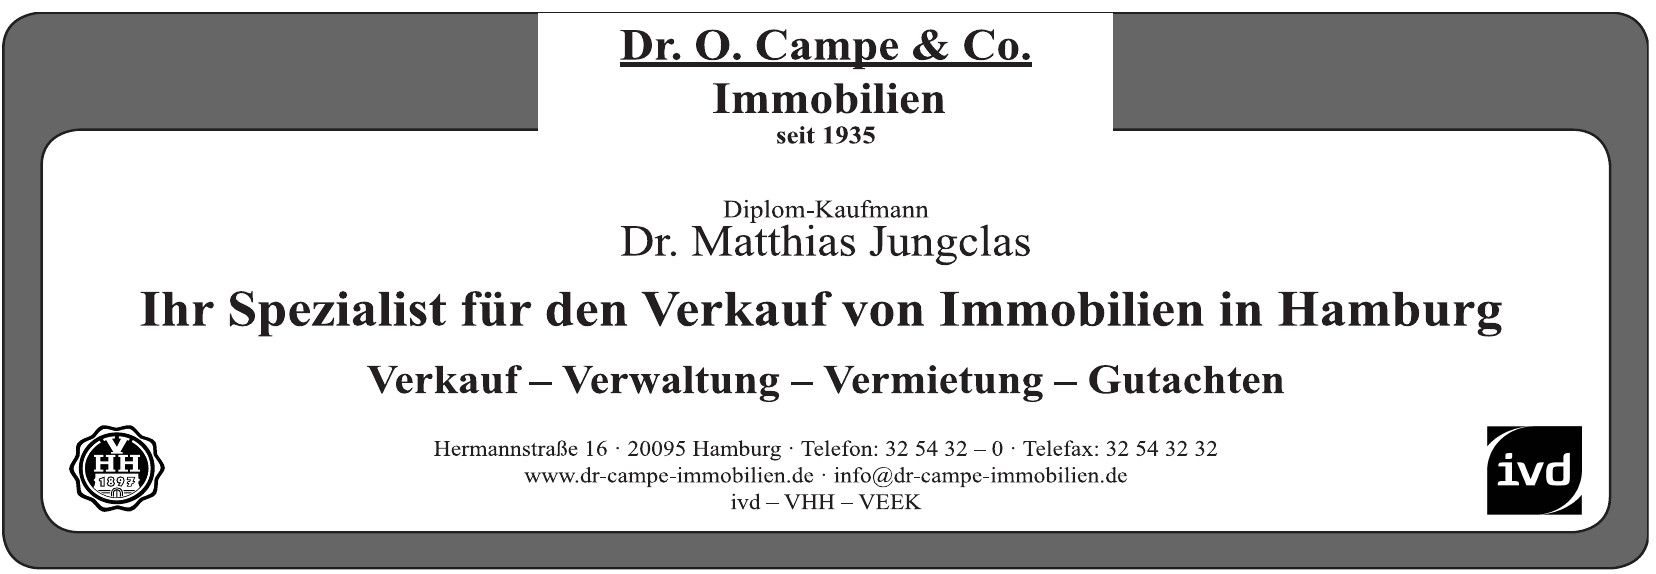 Dr. O. Campre & Cp. Immobilien